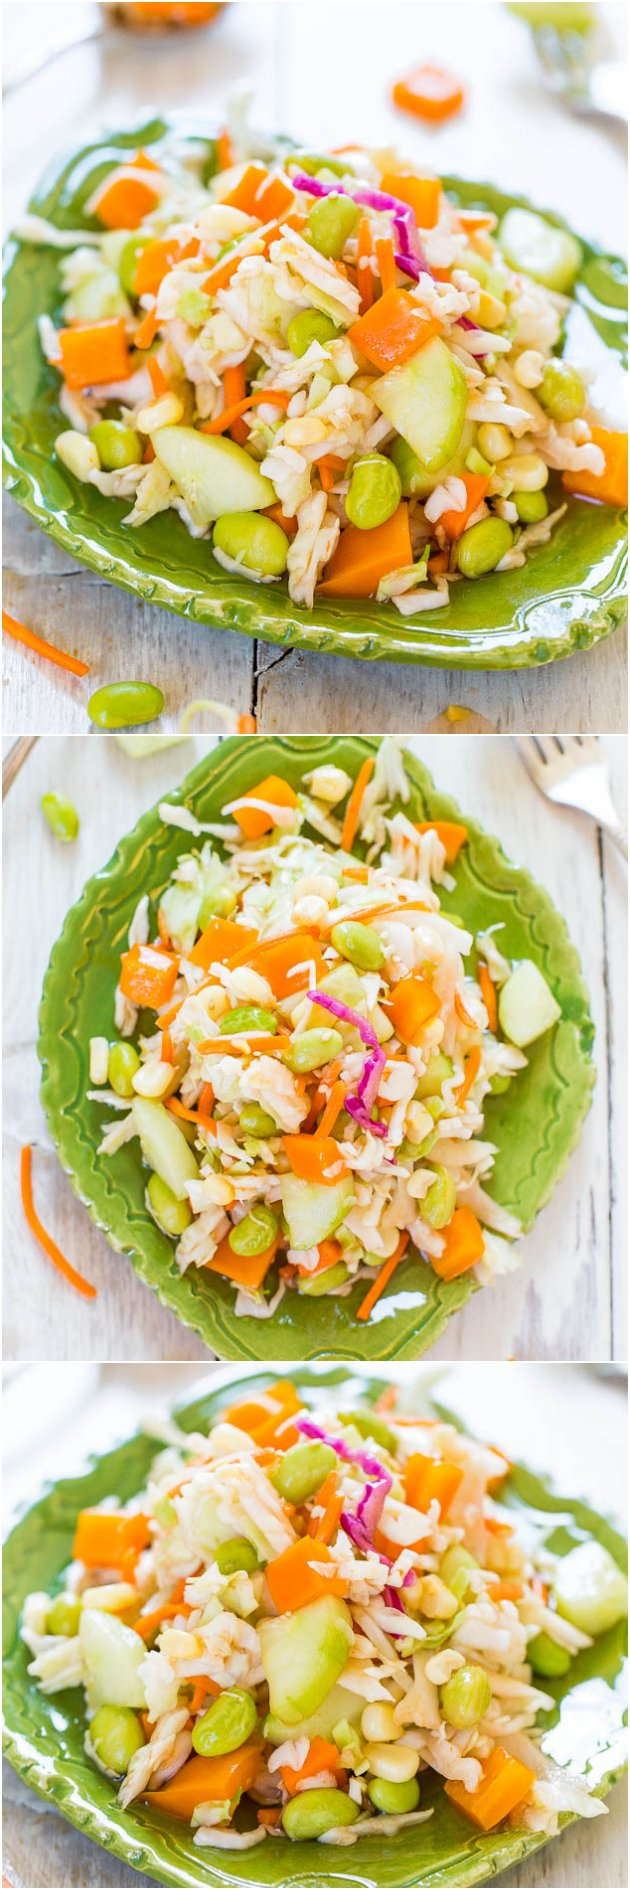 Skinny Mayo-Less Cabbage Salad (vegan, GF) - This healthy cabbage salad/coleslaw isn't coated with gobs of mayo & you won't miss it!